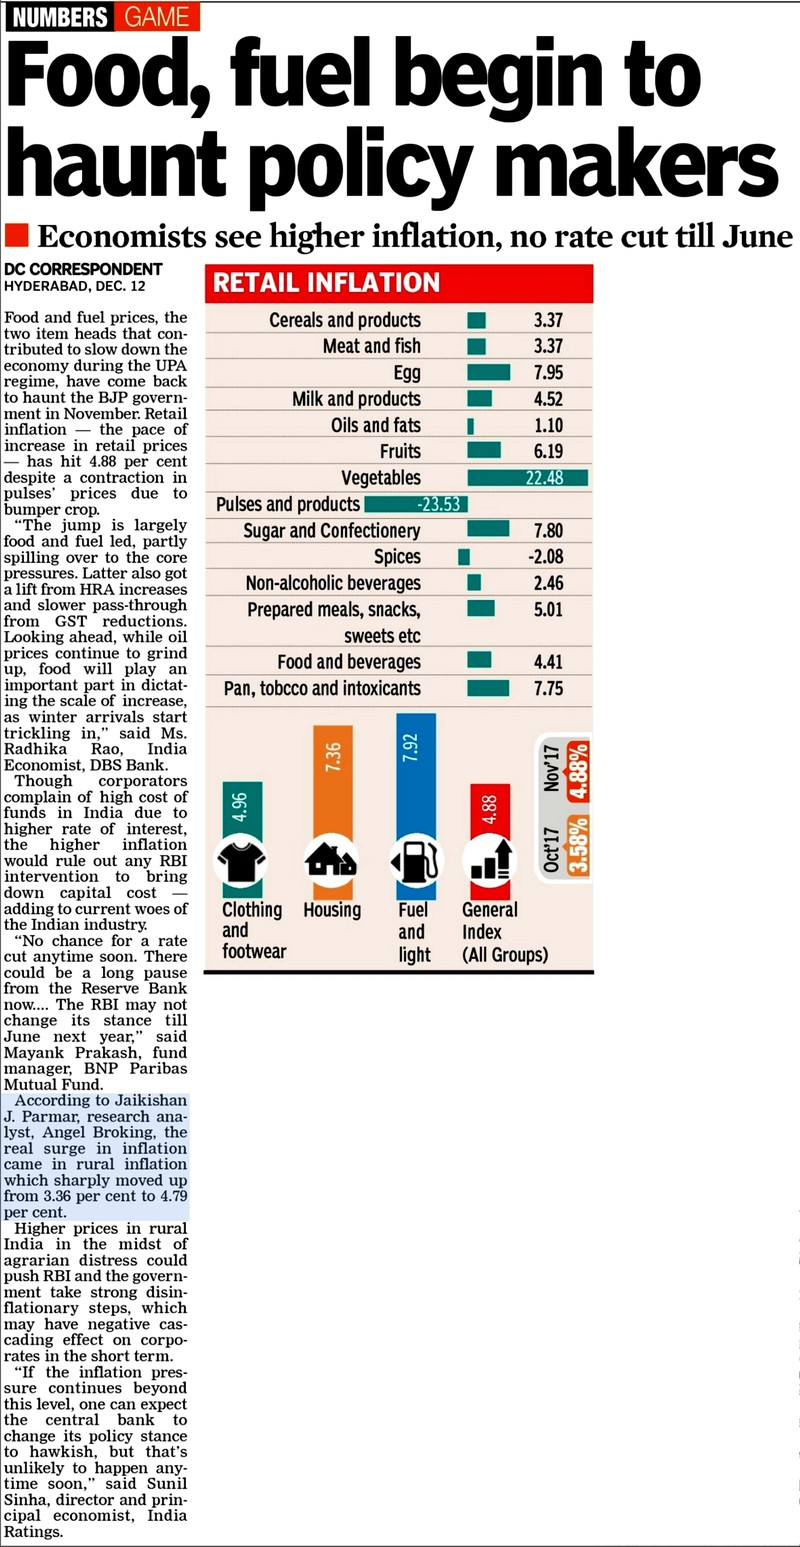 Food, fuel prices begin to haunt Indian policy makers